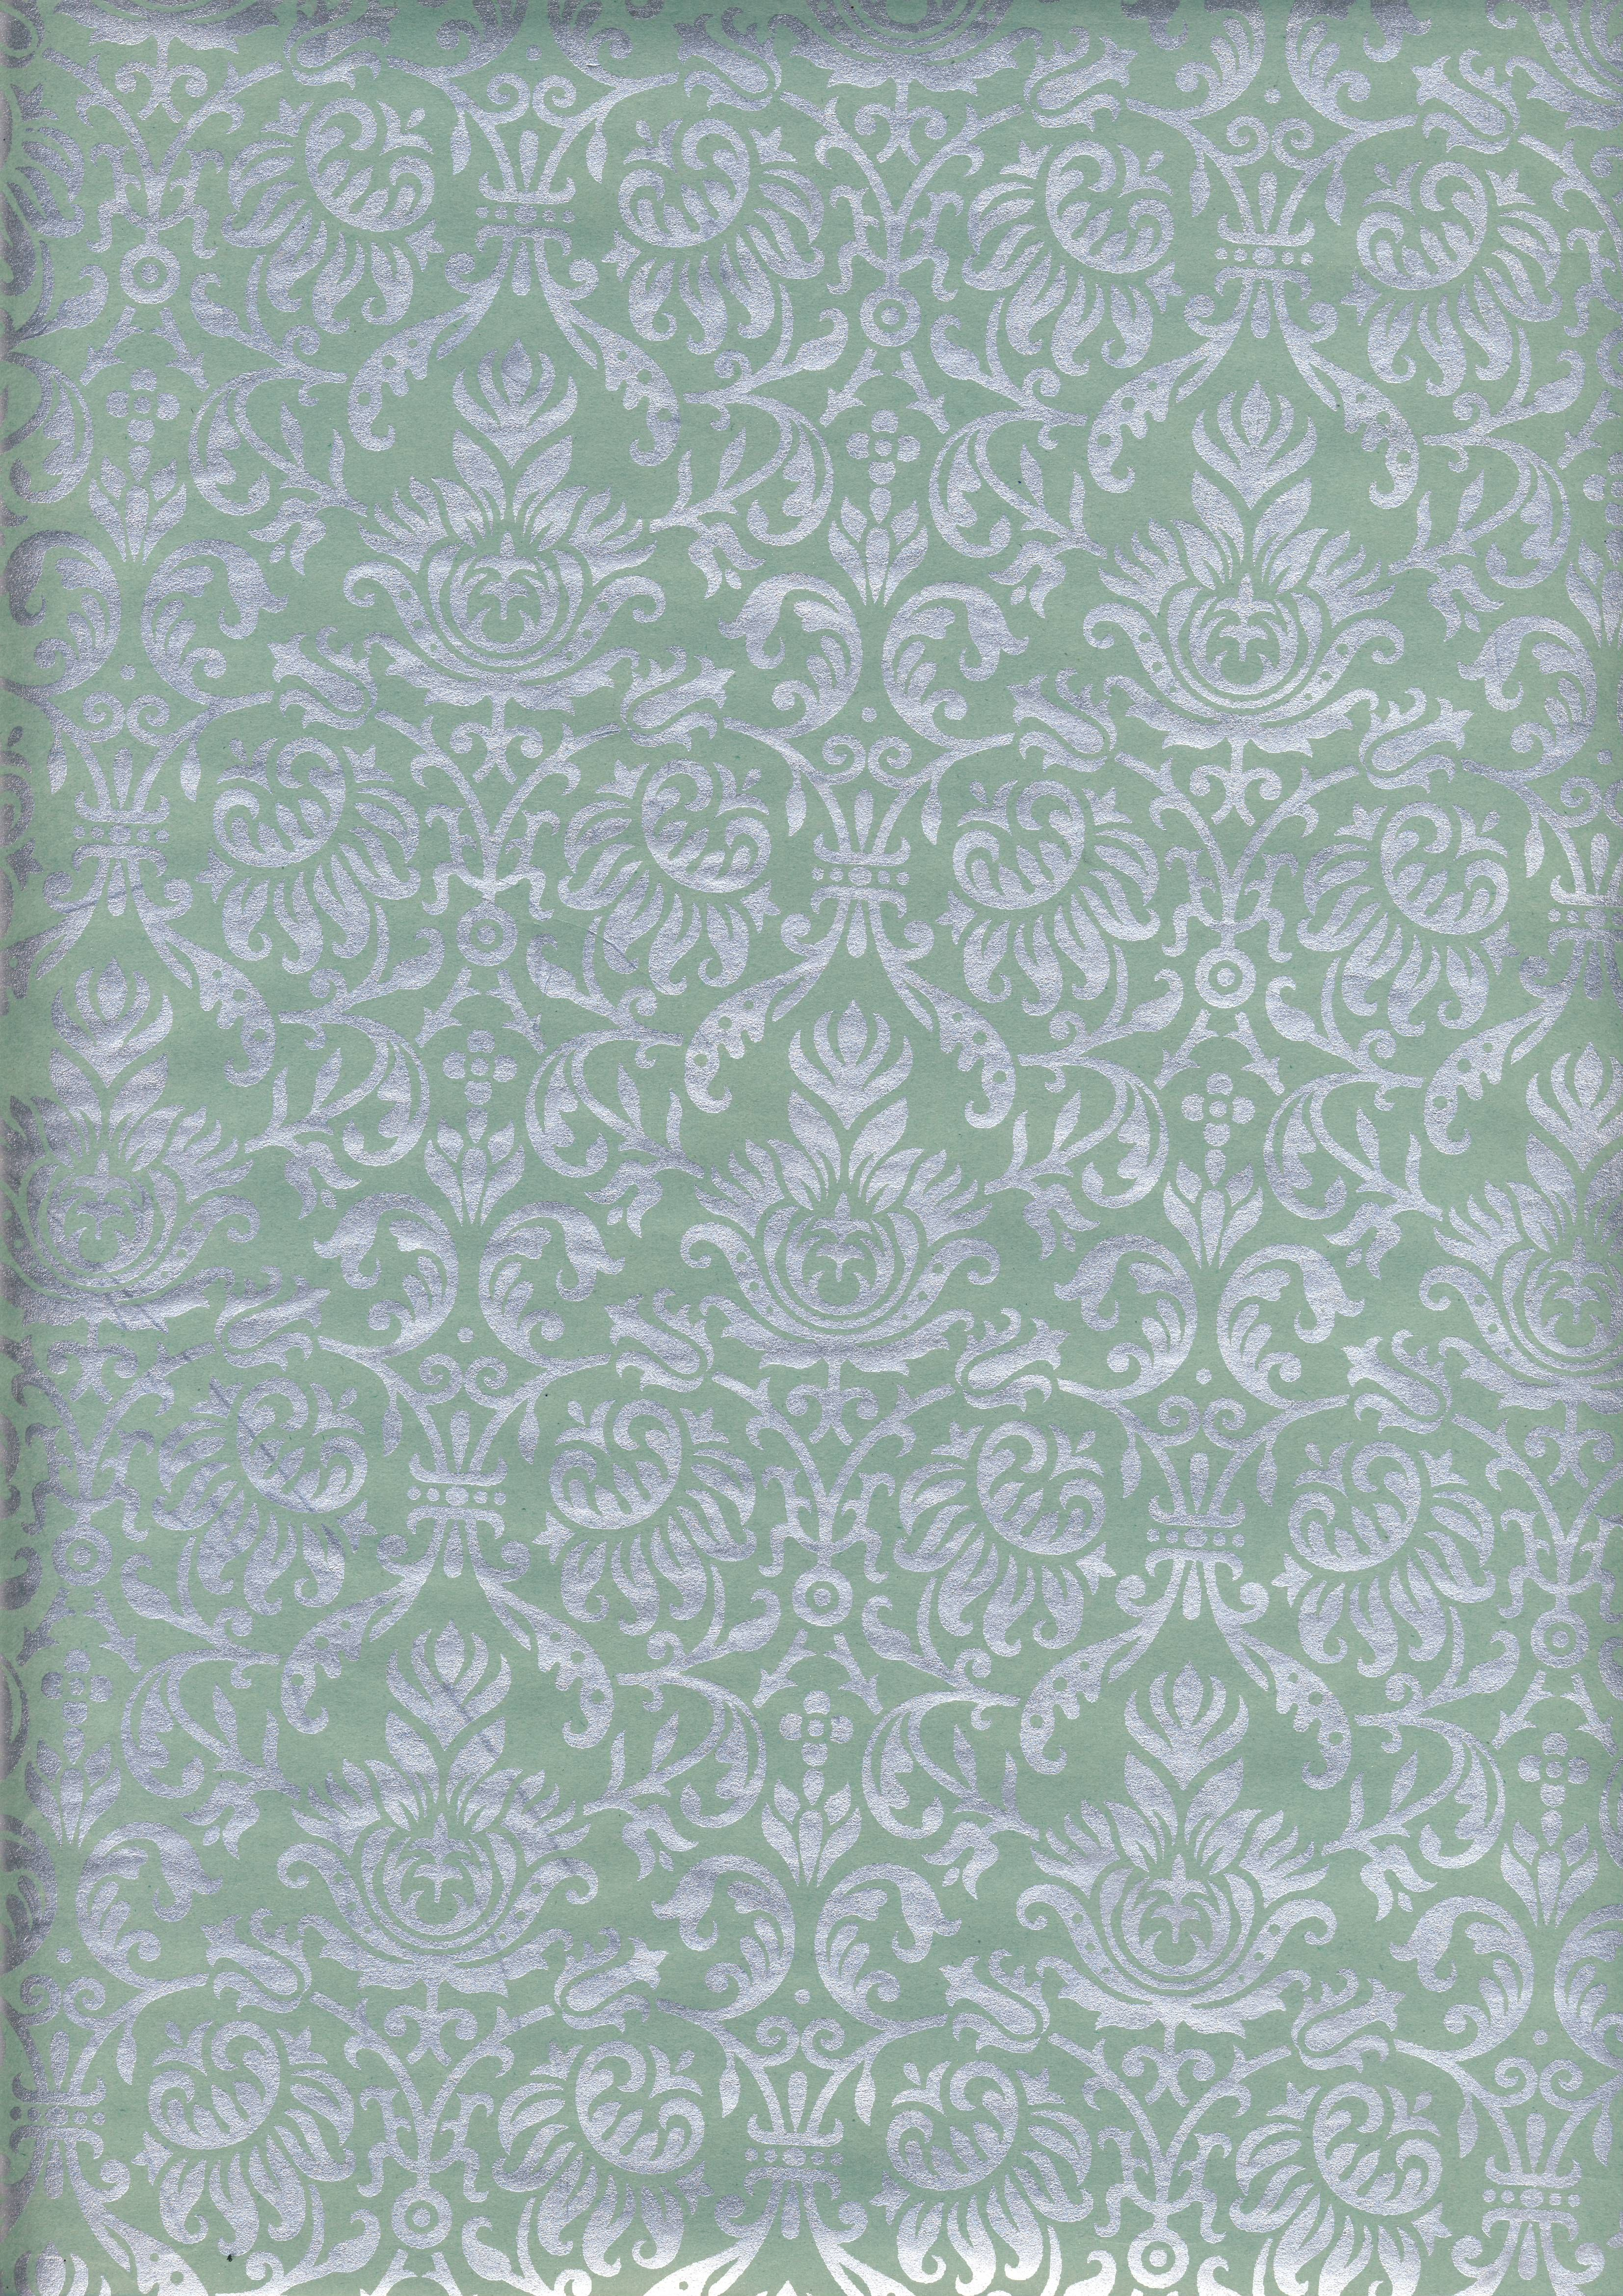 Green-Silver # 94 Wrapping Paper - 14 sheets